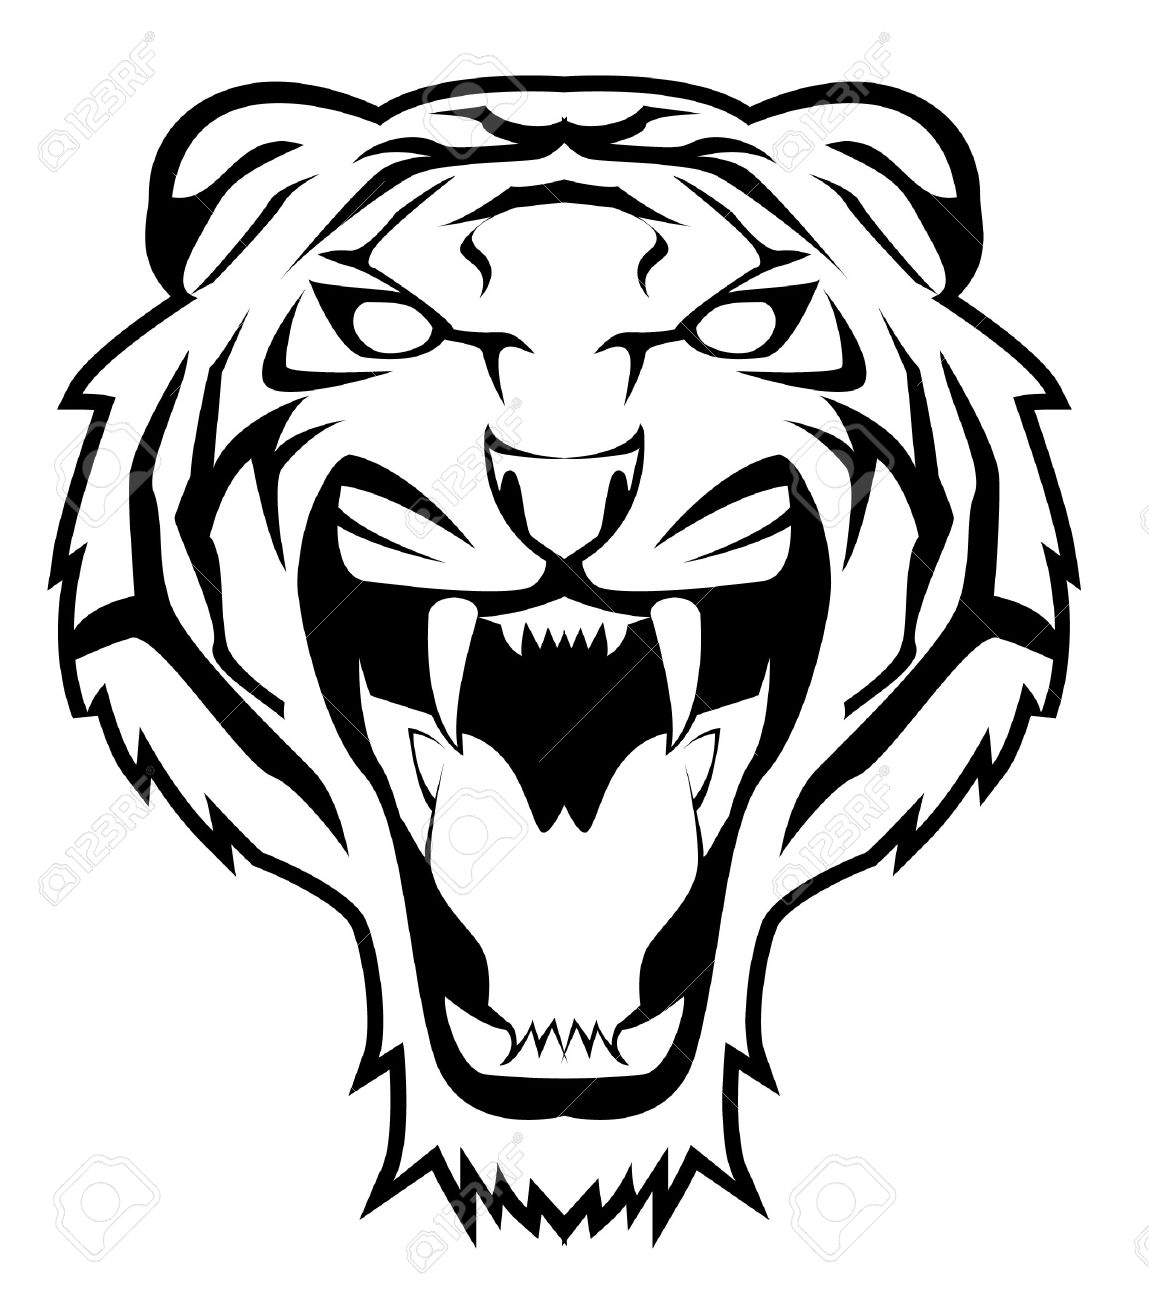 Tiger clipart shadow #14